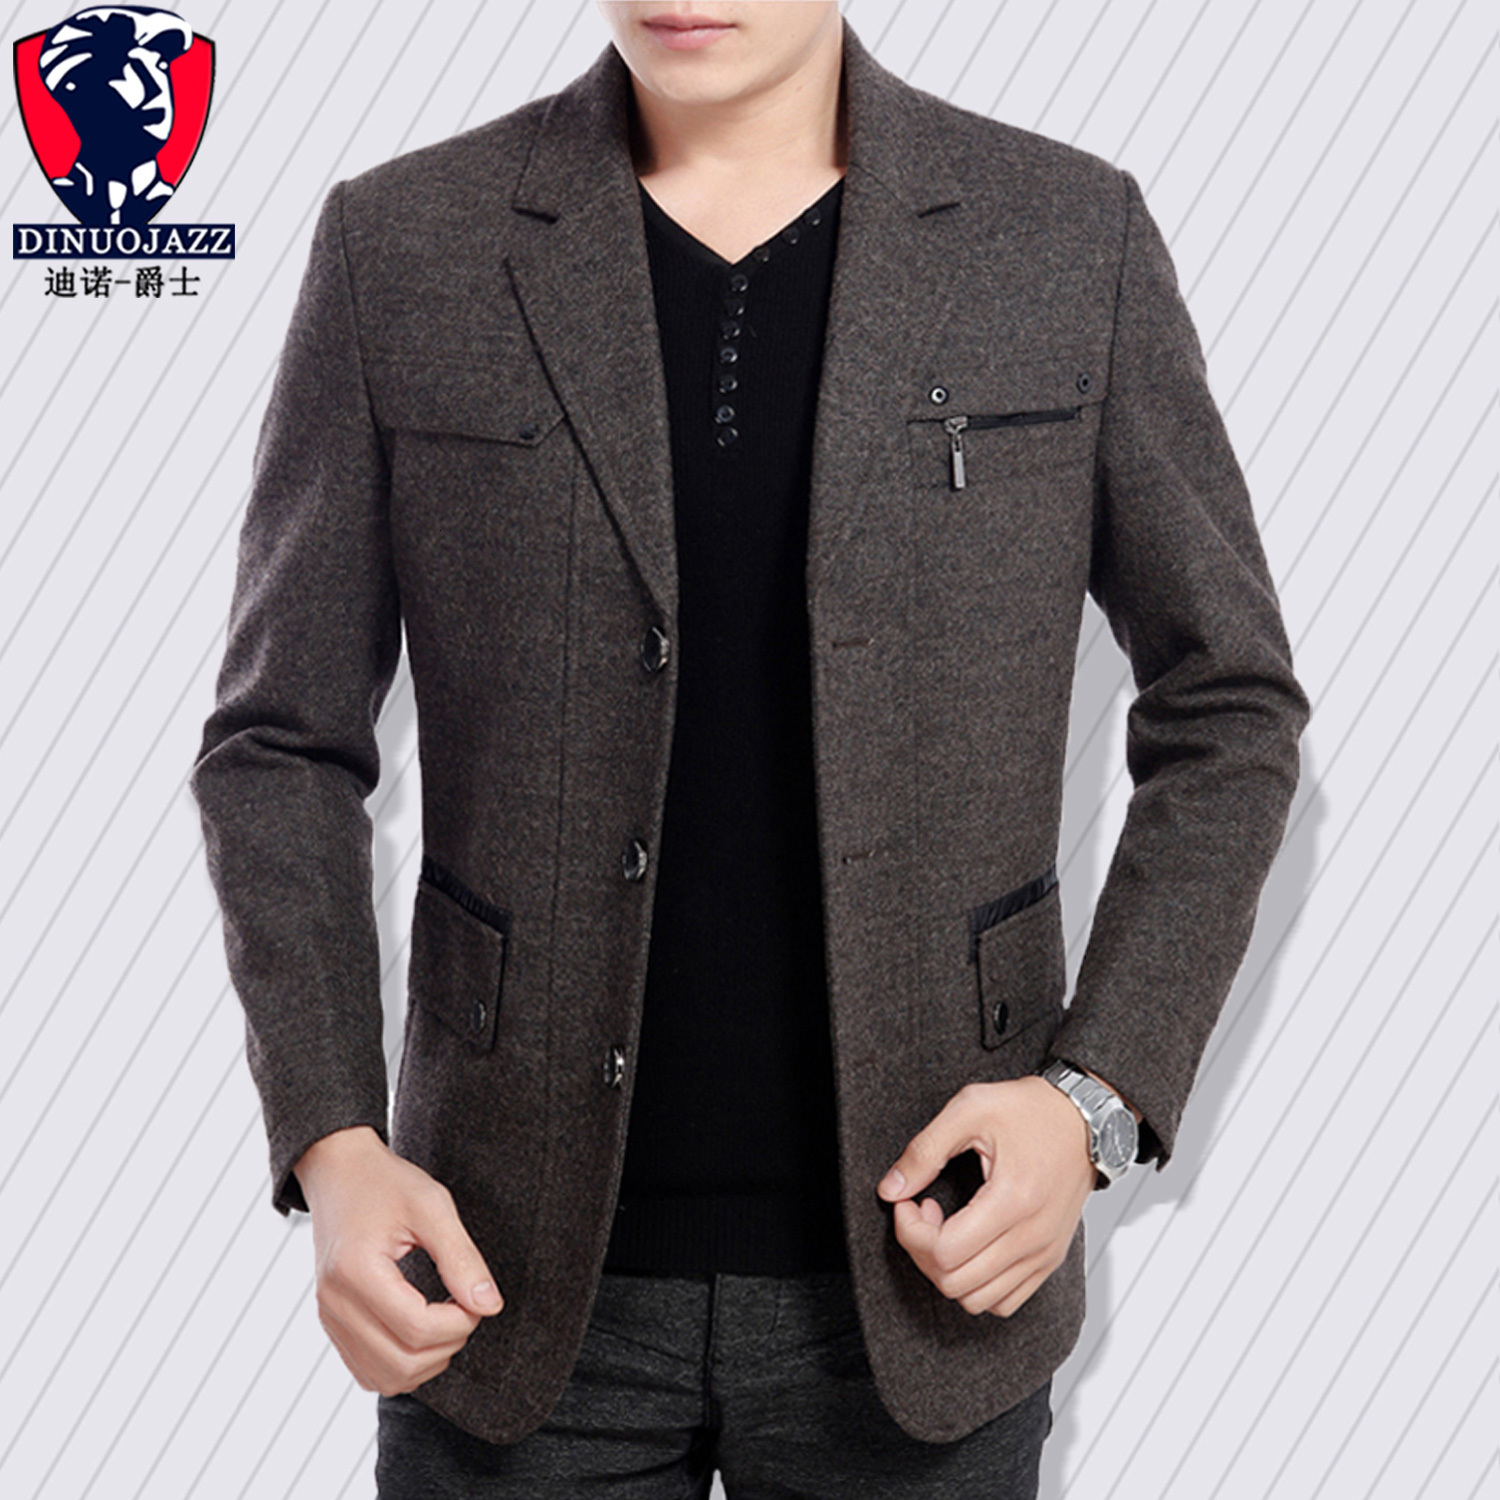 2019 New Autumn Wool Suit Man Long Woolen Jacket Zipper Leisure Coat For Father Loose Coat